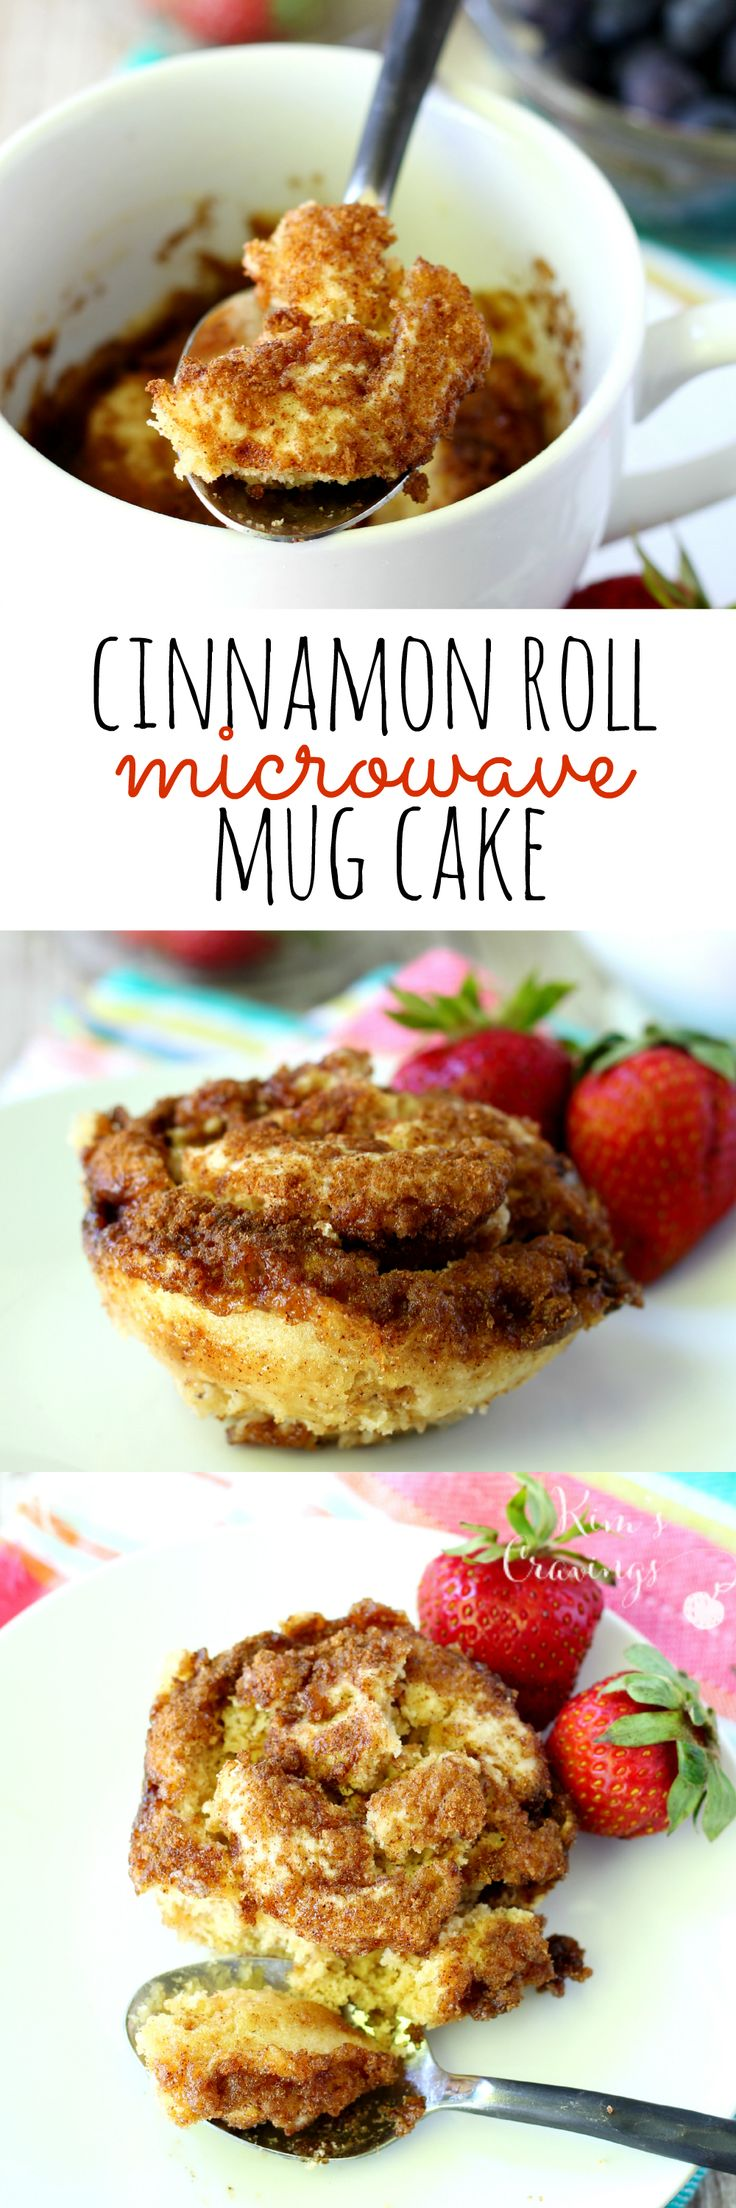 This easy cinnamon roll microwave mug cake is the perfect treat when you're craving a little something sweet!